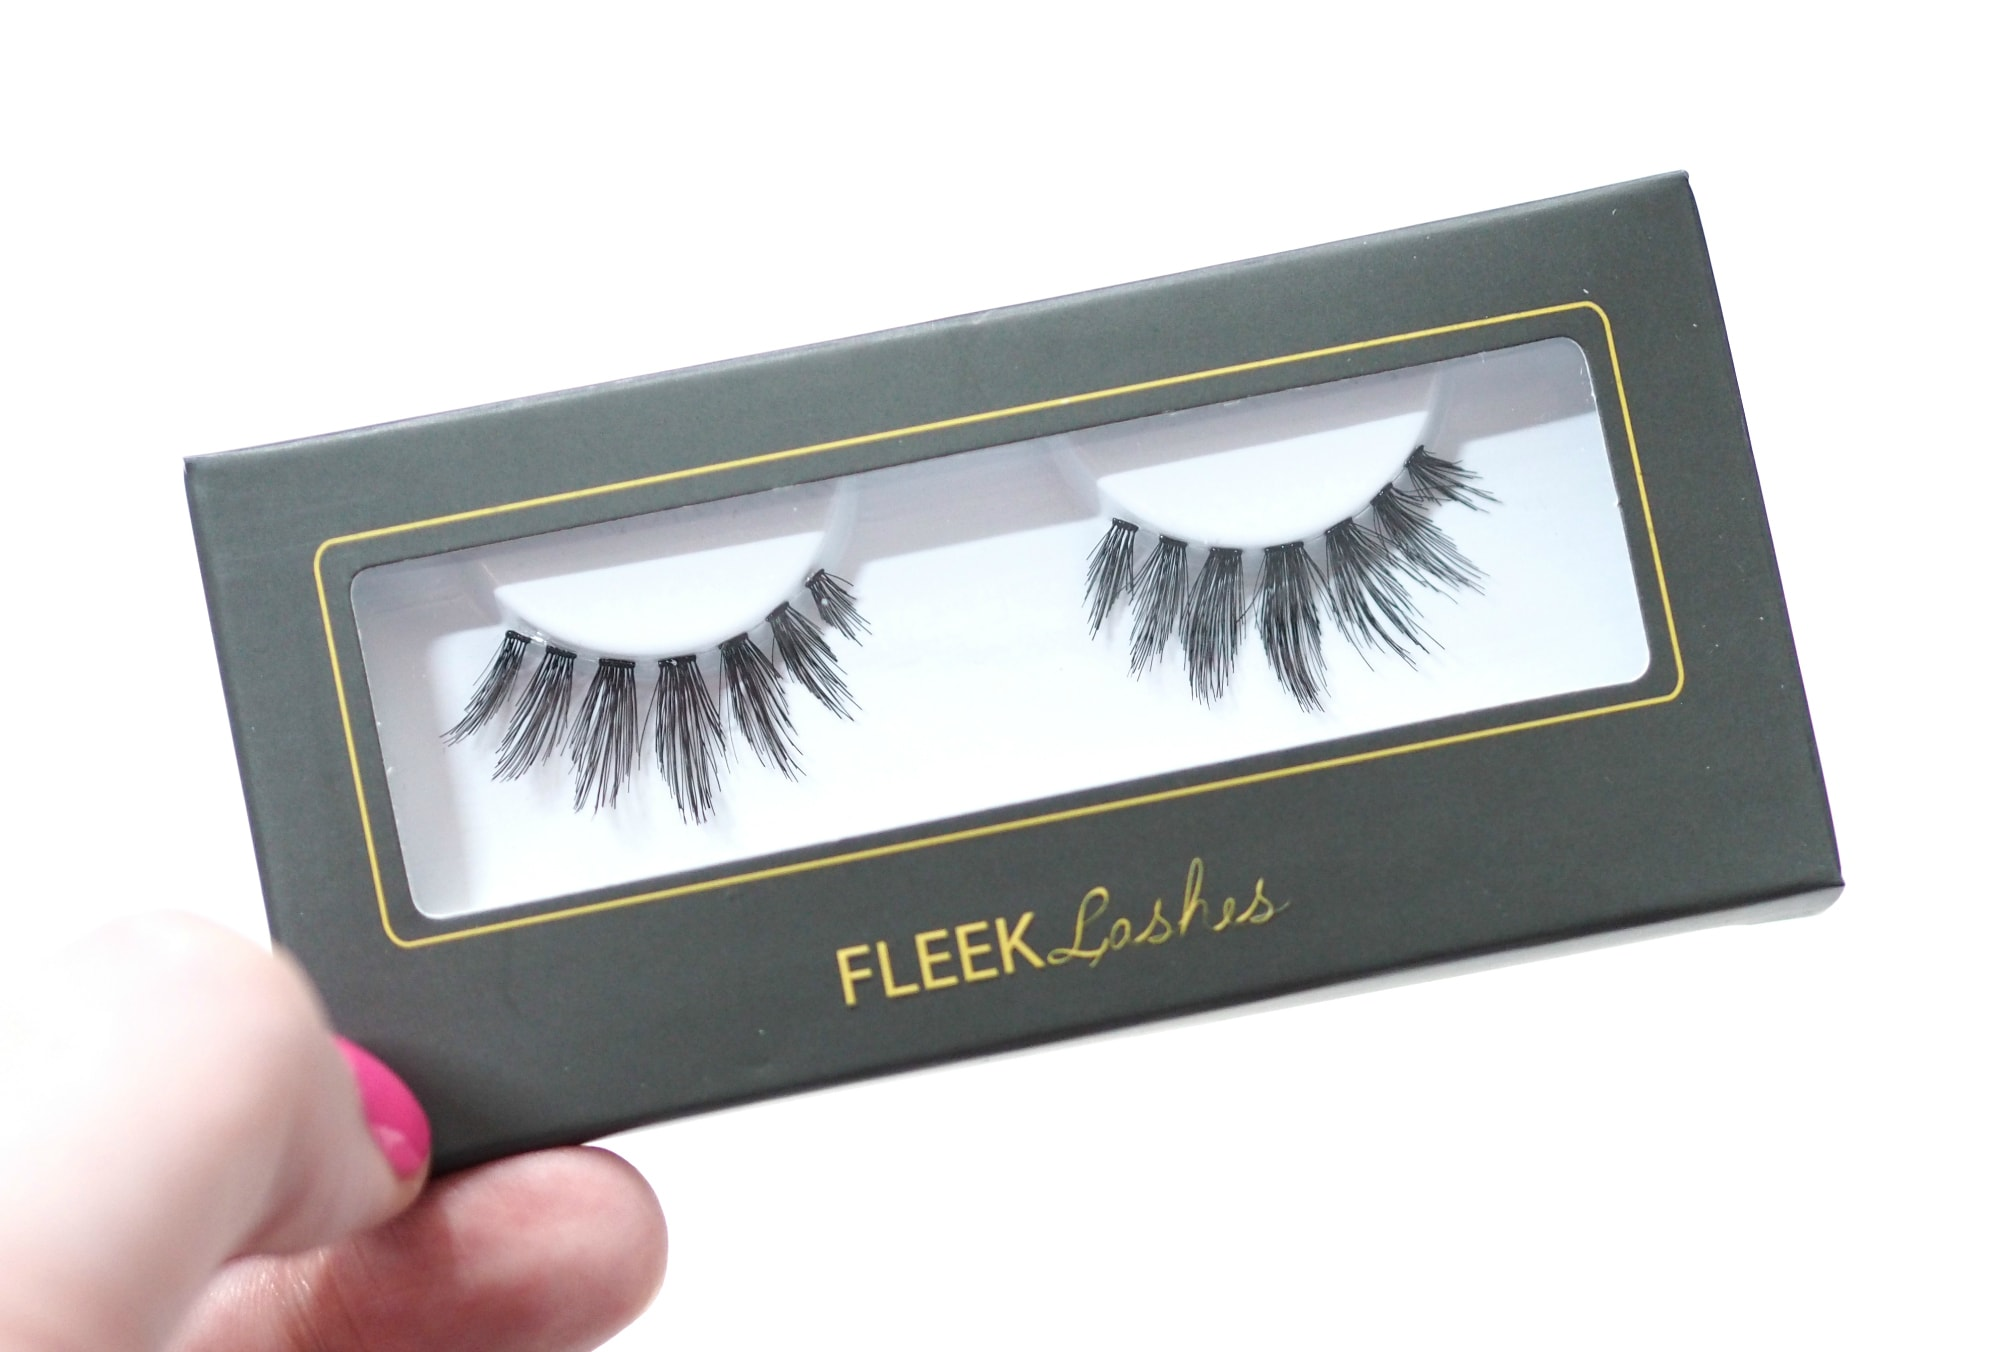 FleekLashes False Lashes and Tools